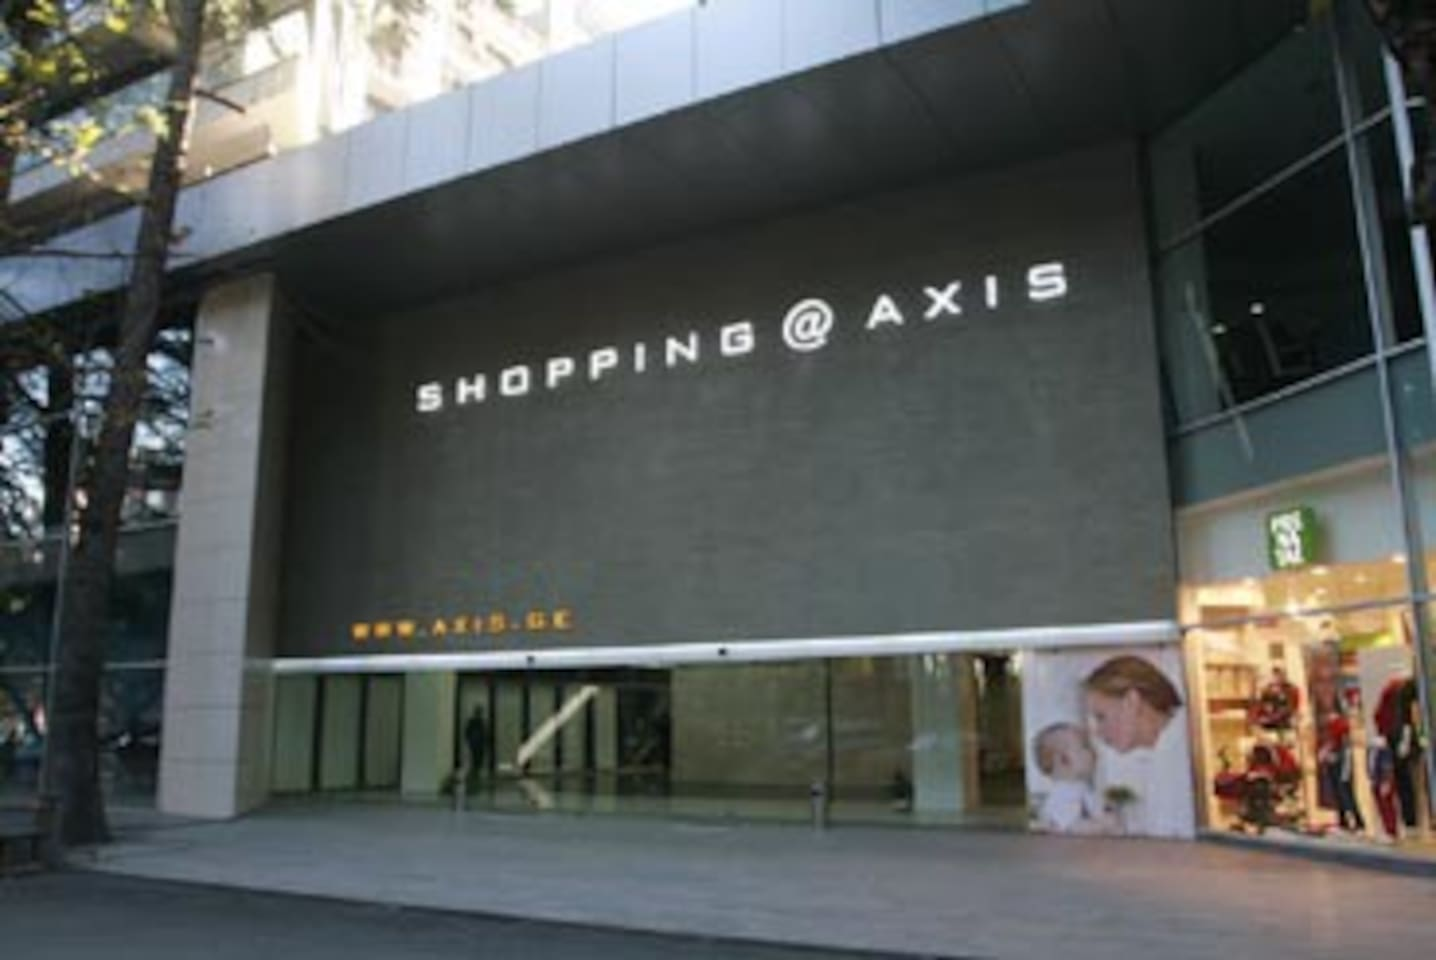 axis shopping centre, on our site area